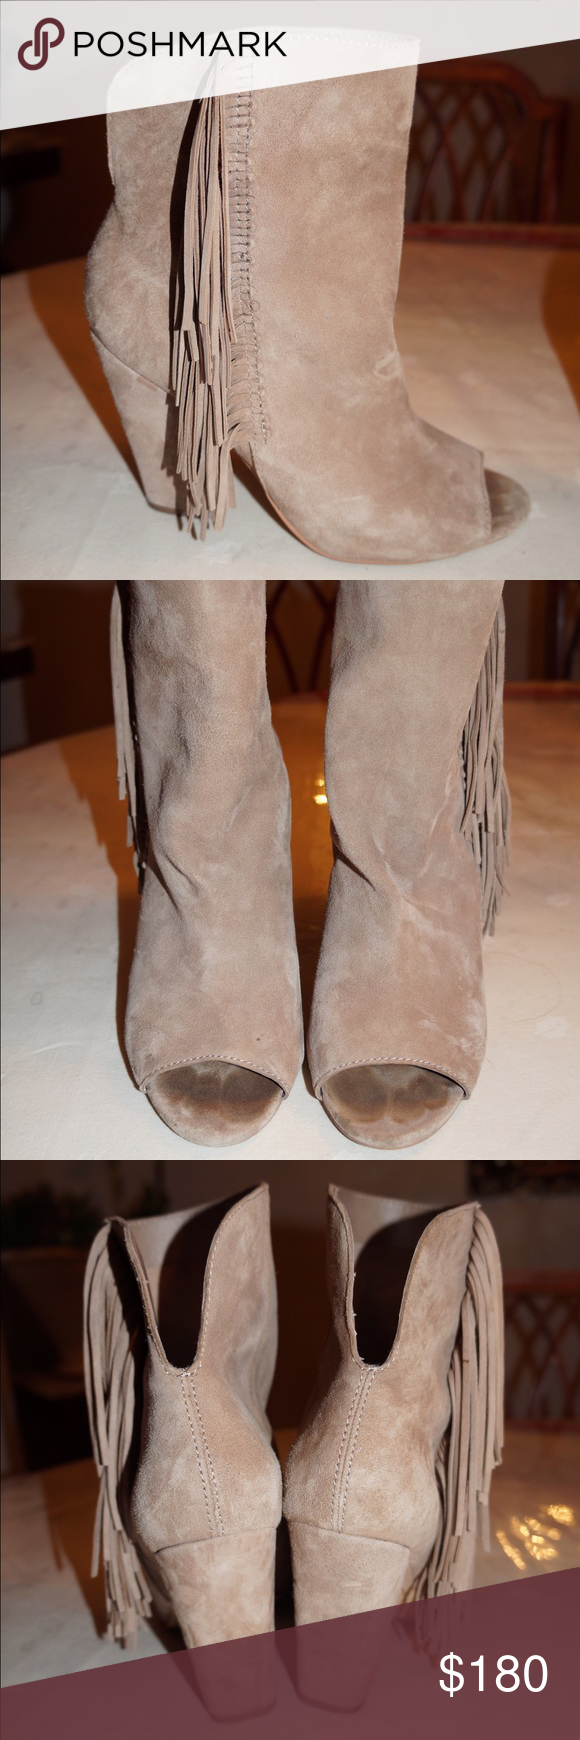 Dolce Vita Tan Fringe Booties Worn once. In great condition! Open to offers Dolce Vita Shoes Ankle Boots & Booties